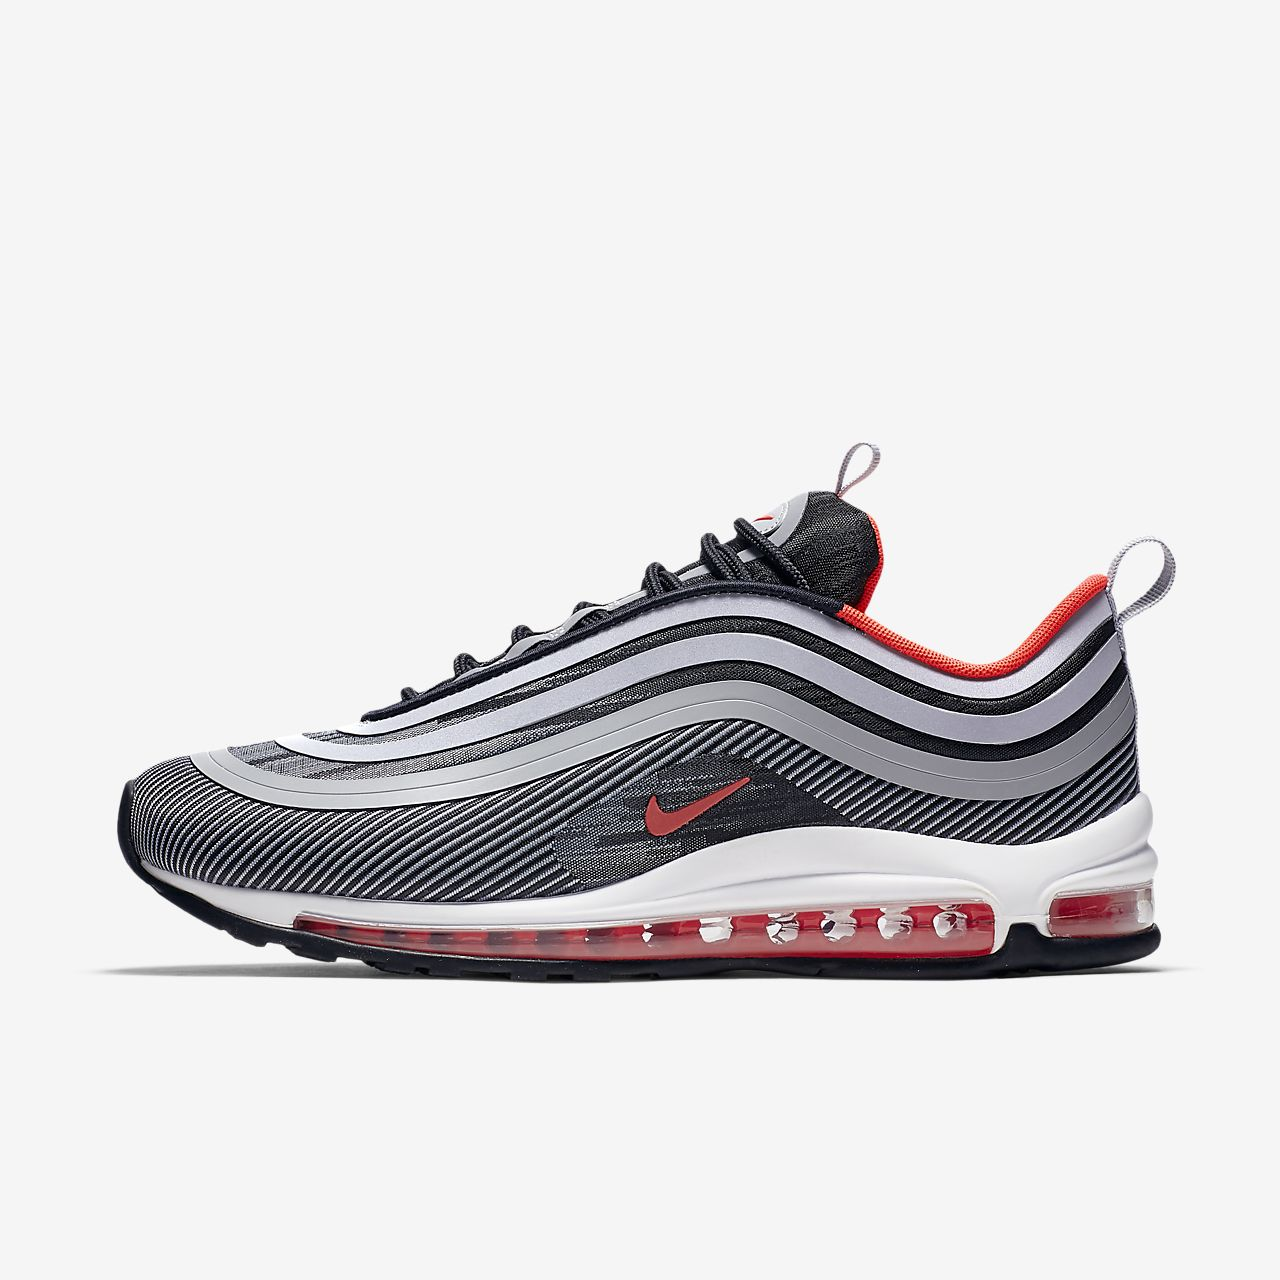 reputable site ad0ac 259b0 ... รองเท้าผู้ชาย Nike Air Max 97 Ultra  17